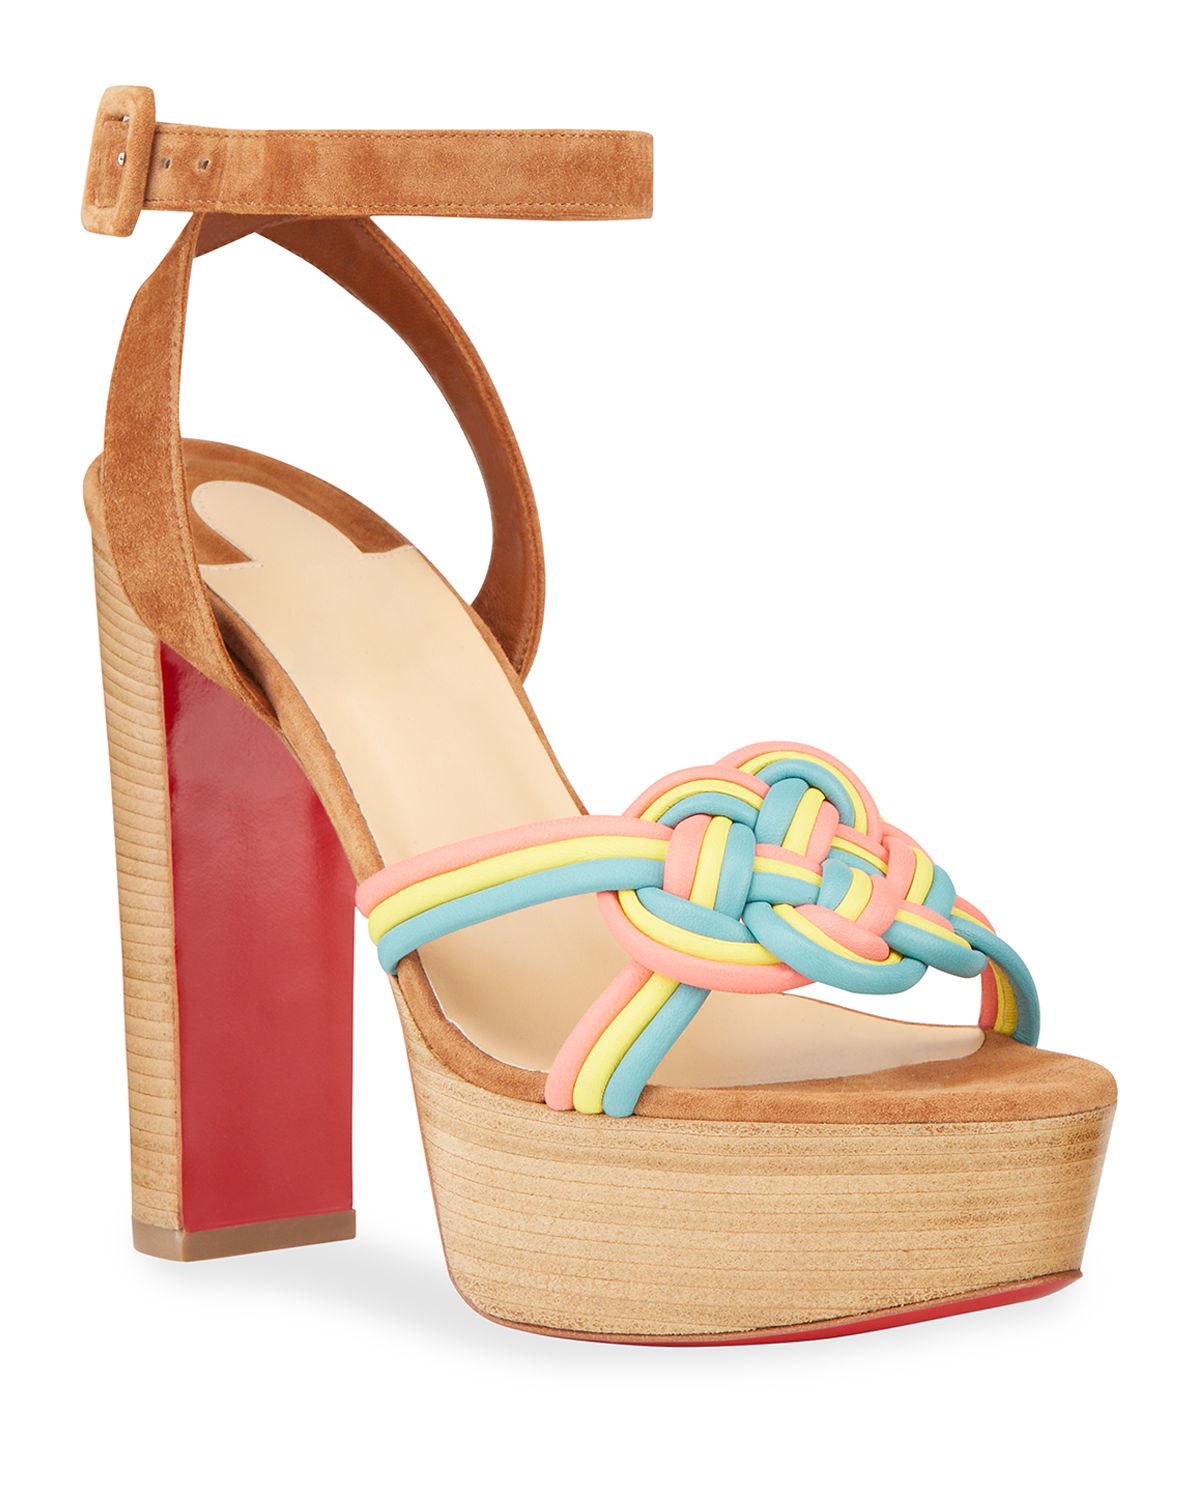 Christian Louboutin ELLA MULTICOLOR BRAIDED PLATFORM RED SOLE SANDALS